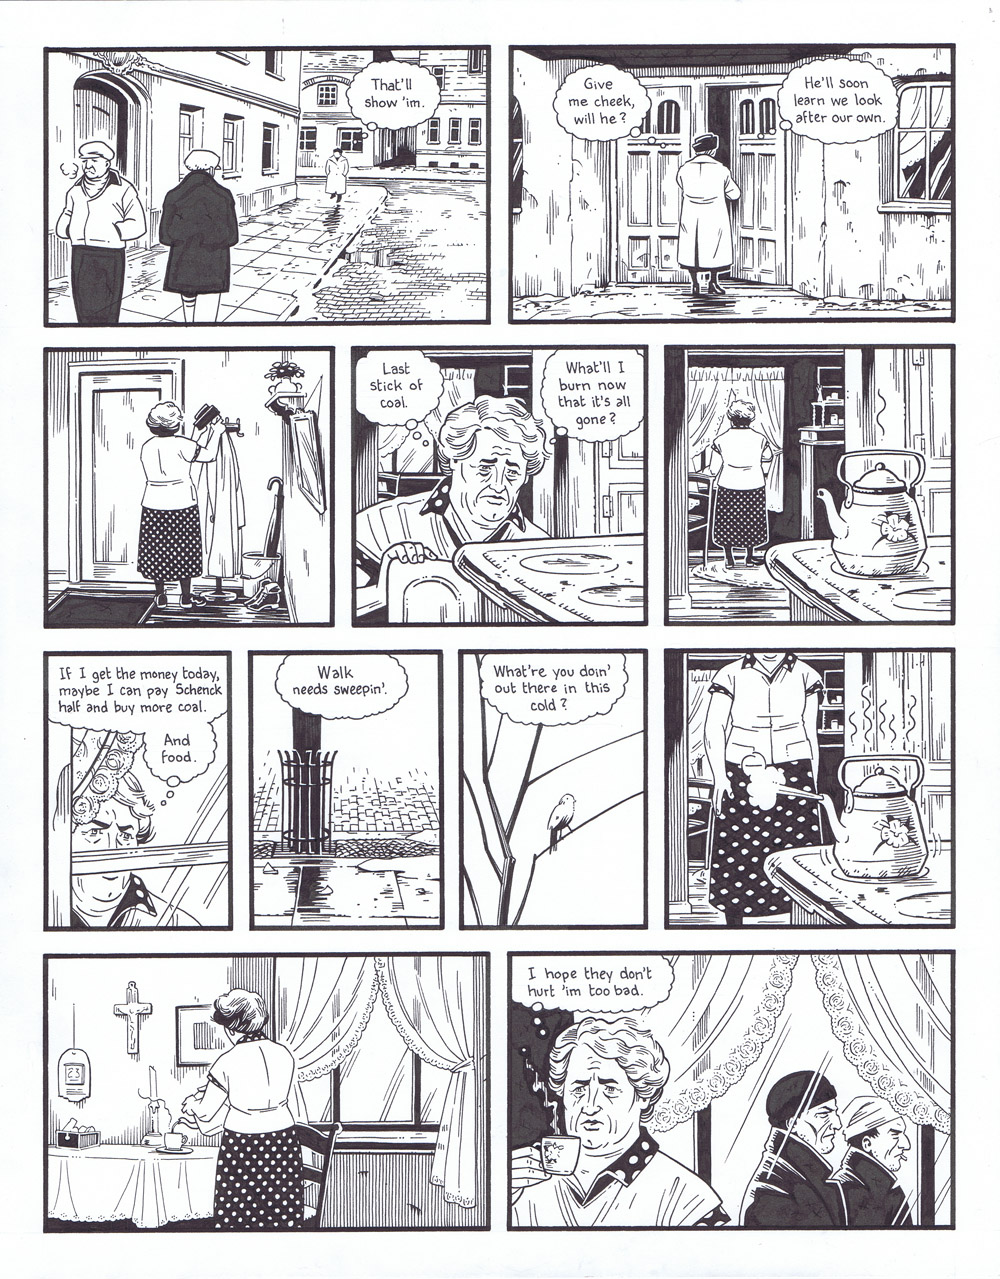 Berlin: Book 2 - page 140